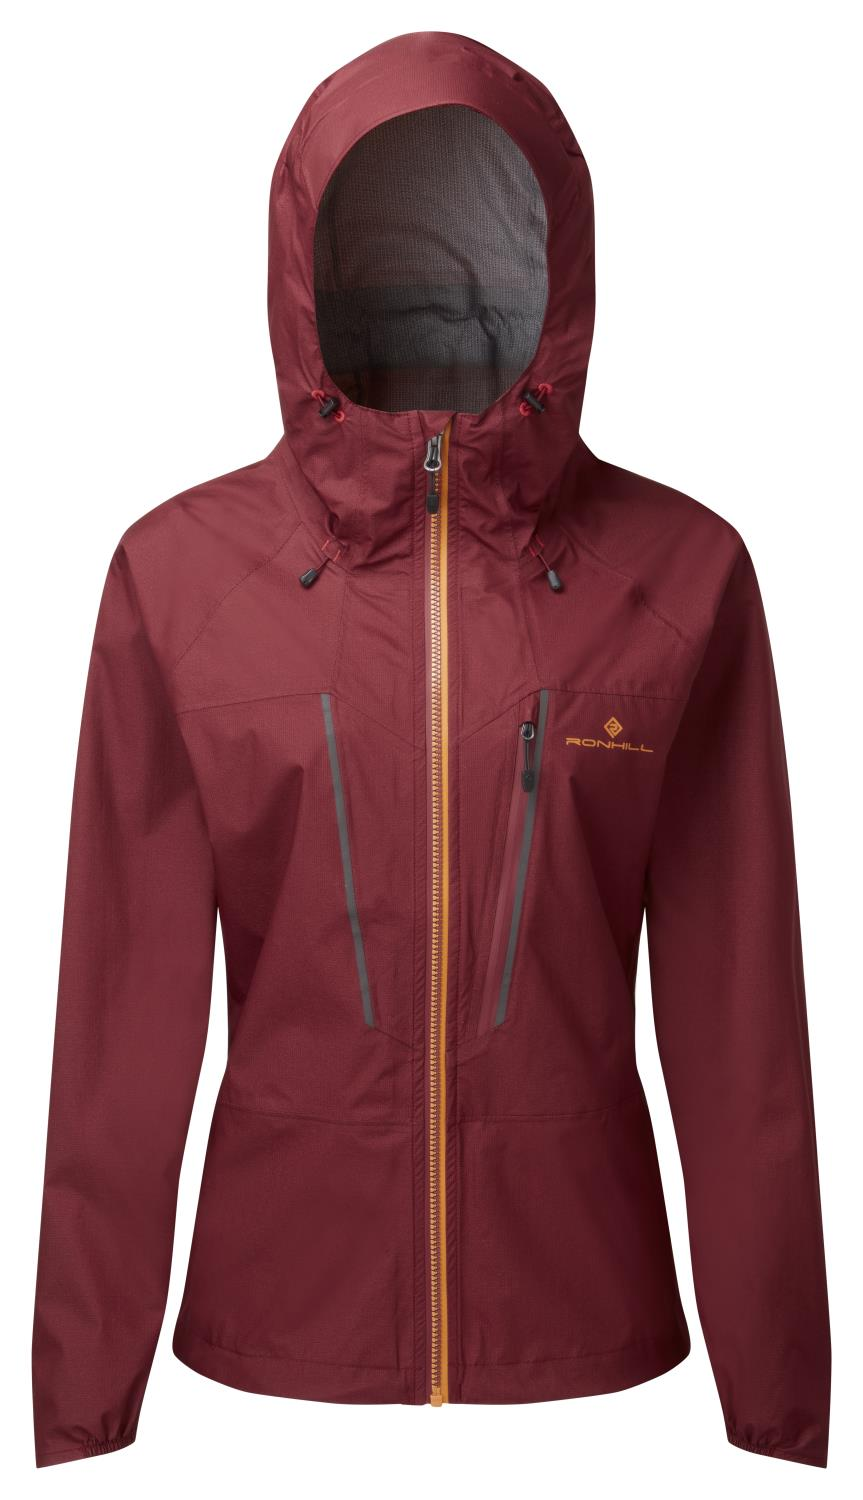 Ronhill Tech Fority Jacket Wmns